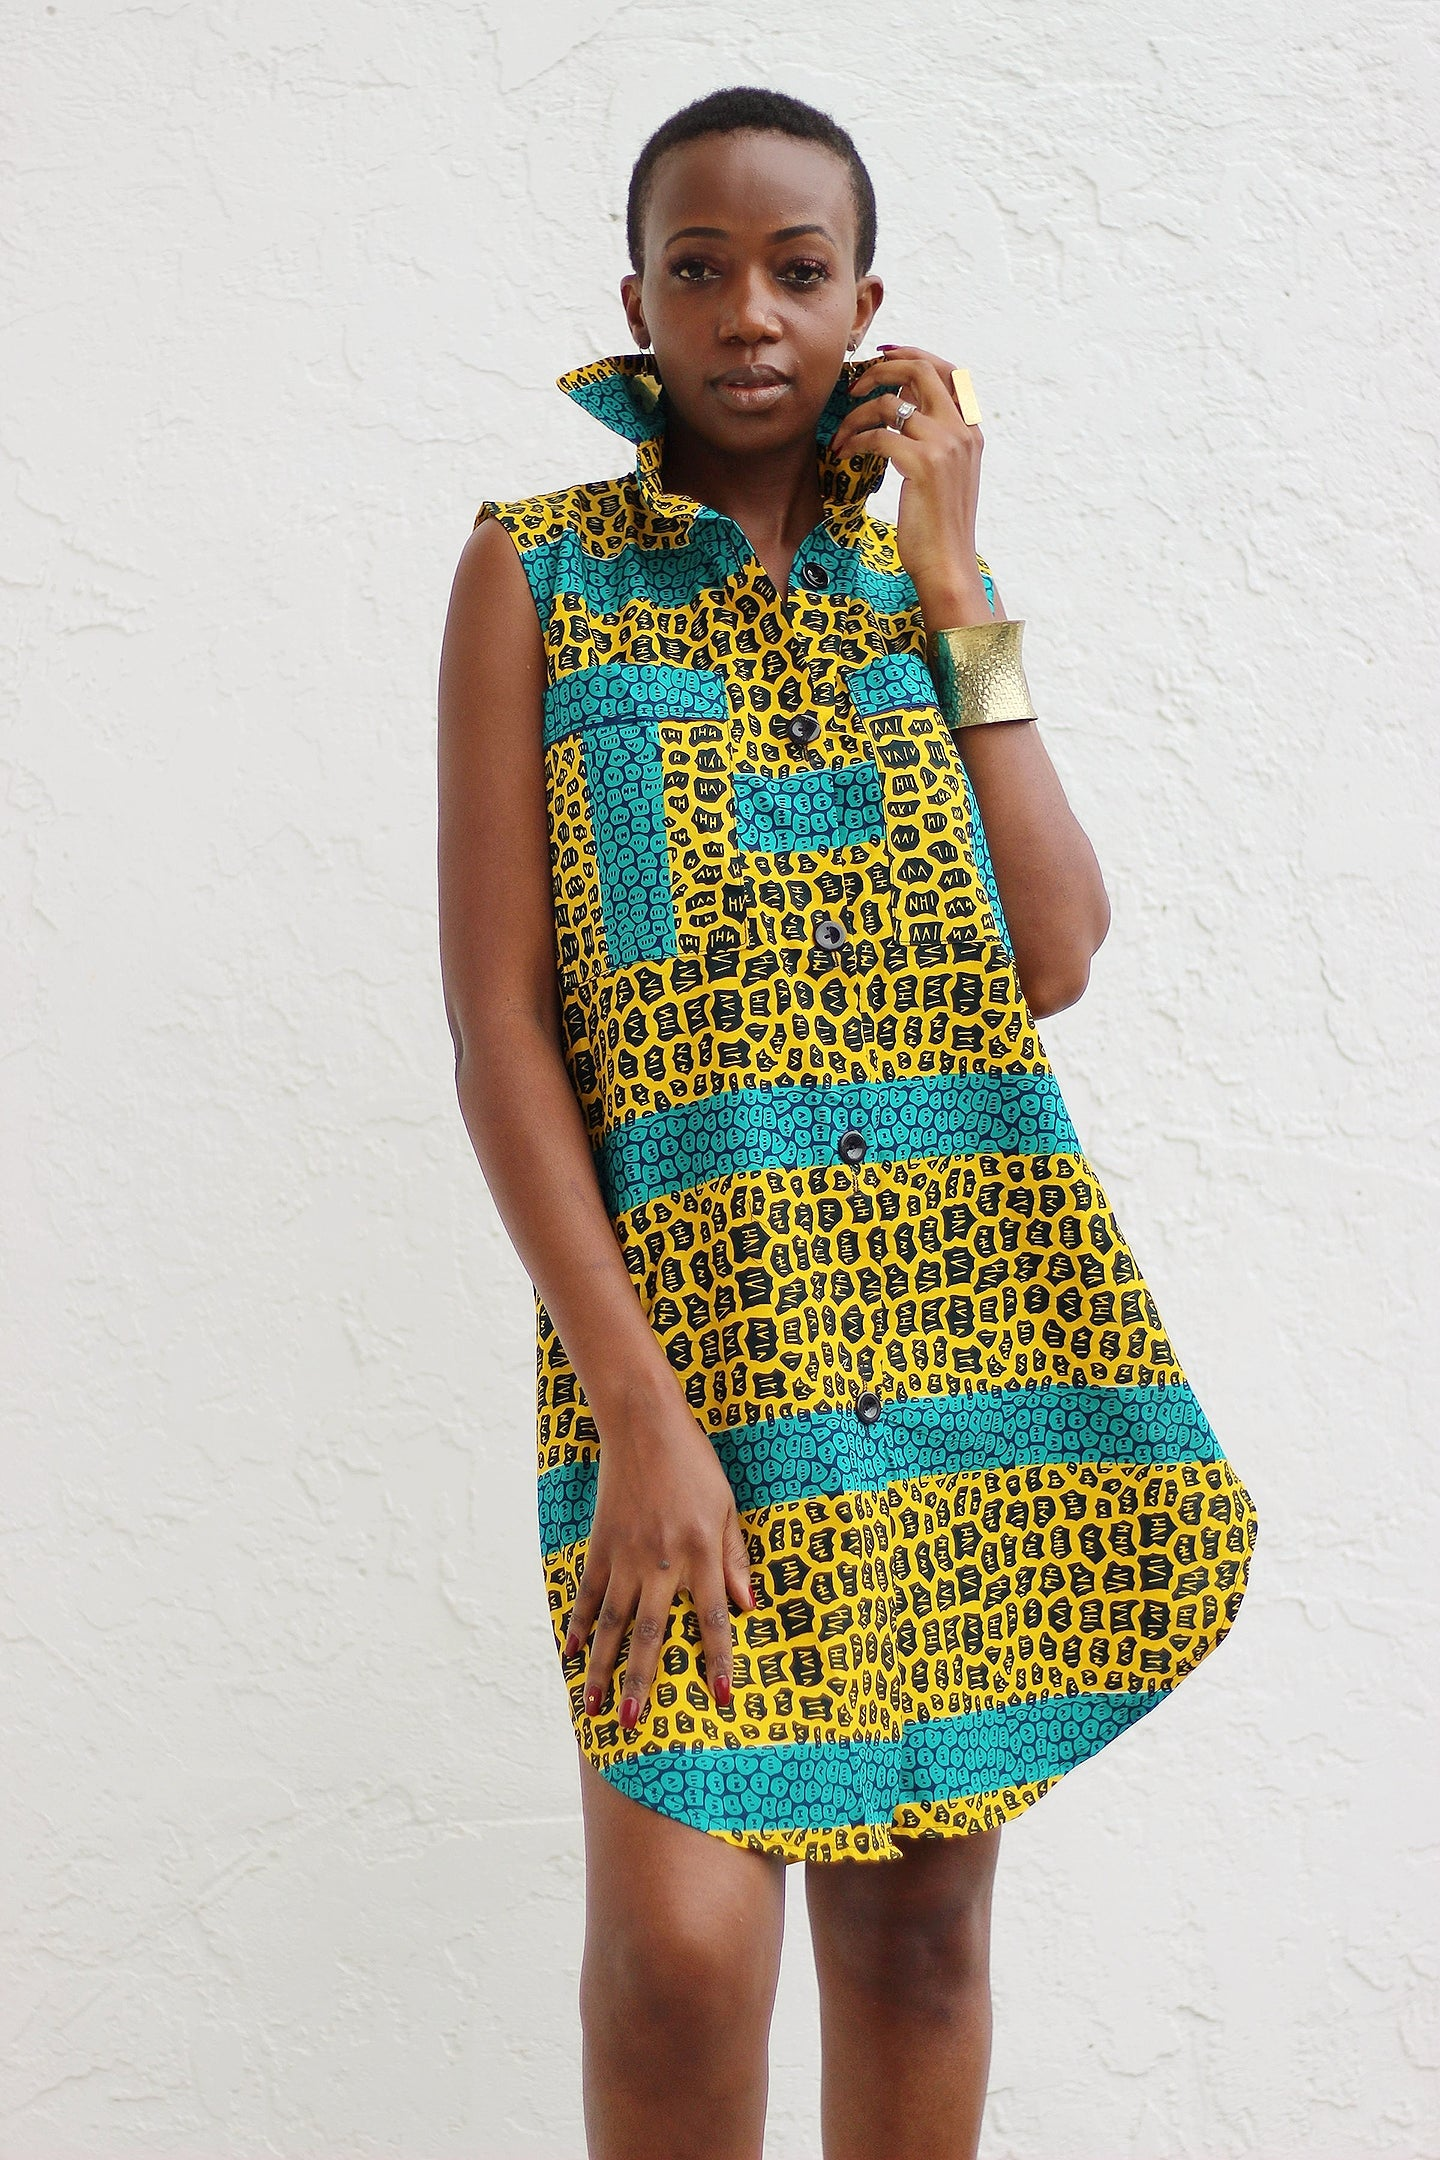 African Print /Ankara /Kitenge Zao Dress Top - Green/Black/Mustard Yellow Animal Print Print - Africas Closet